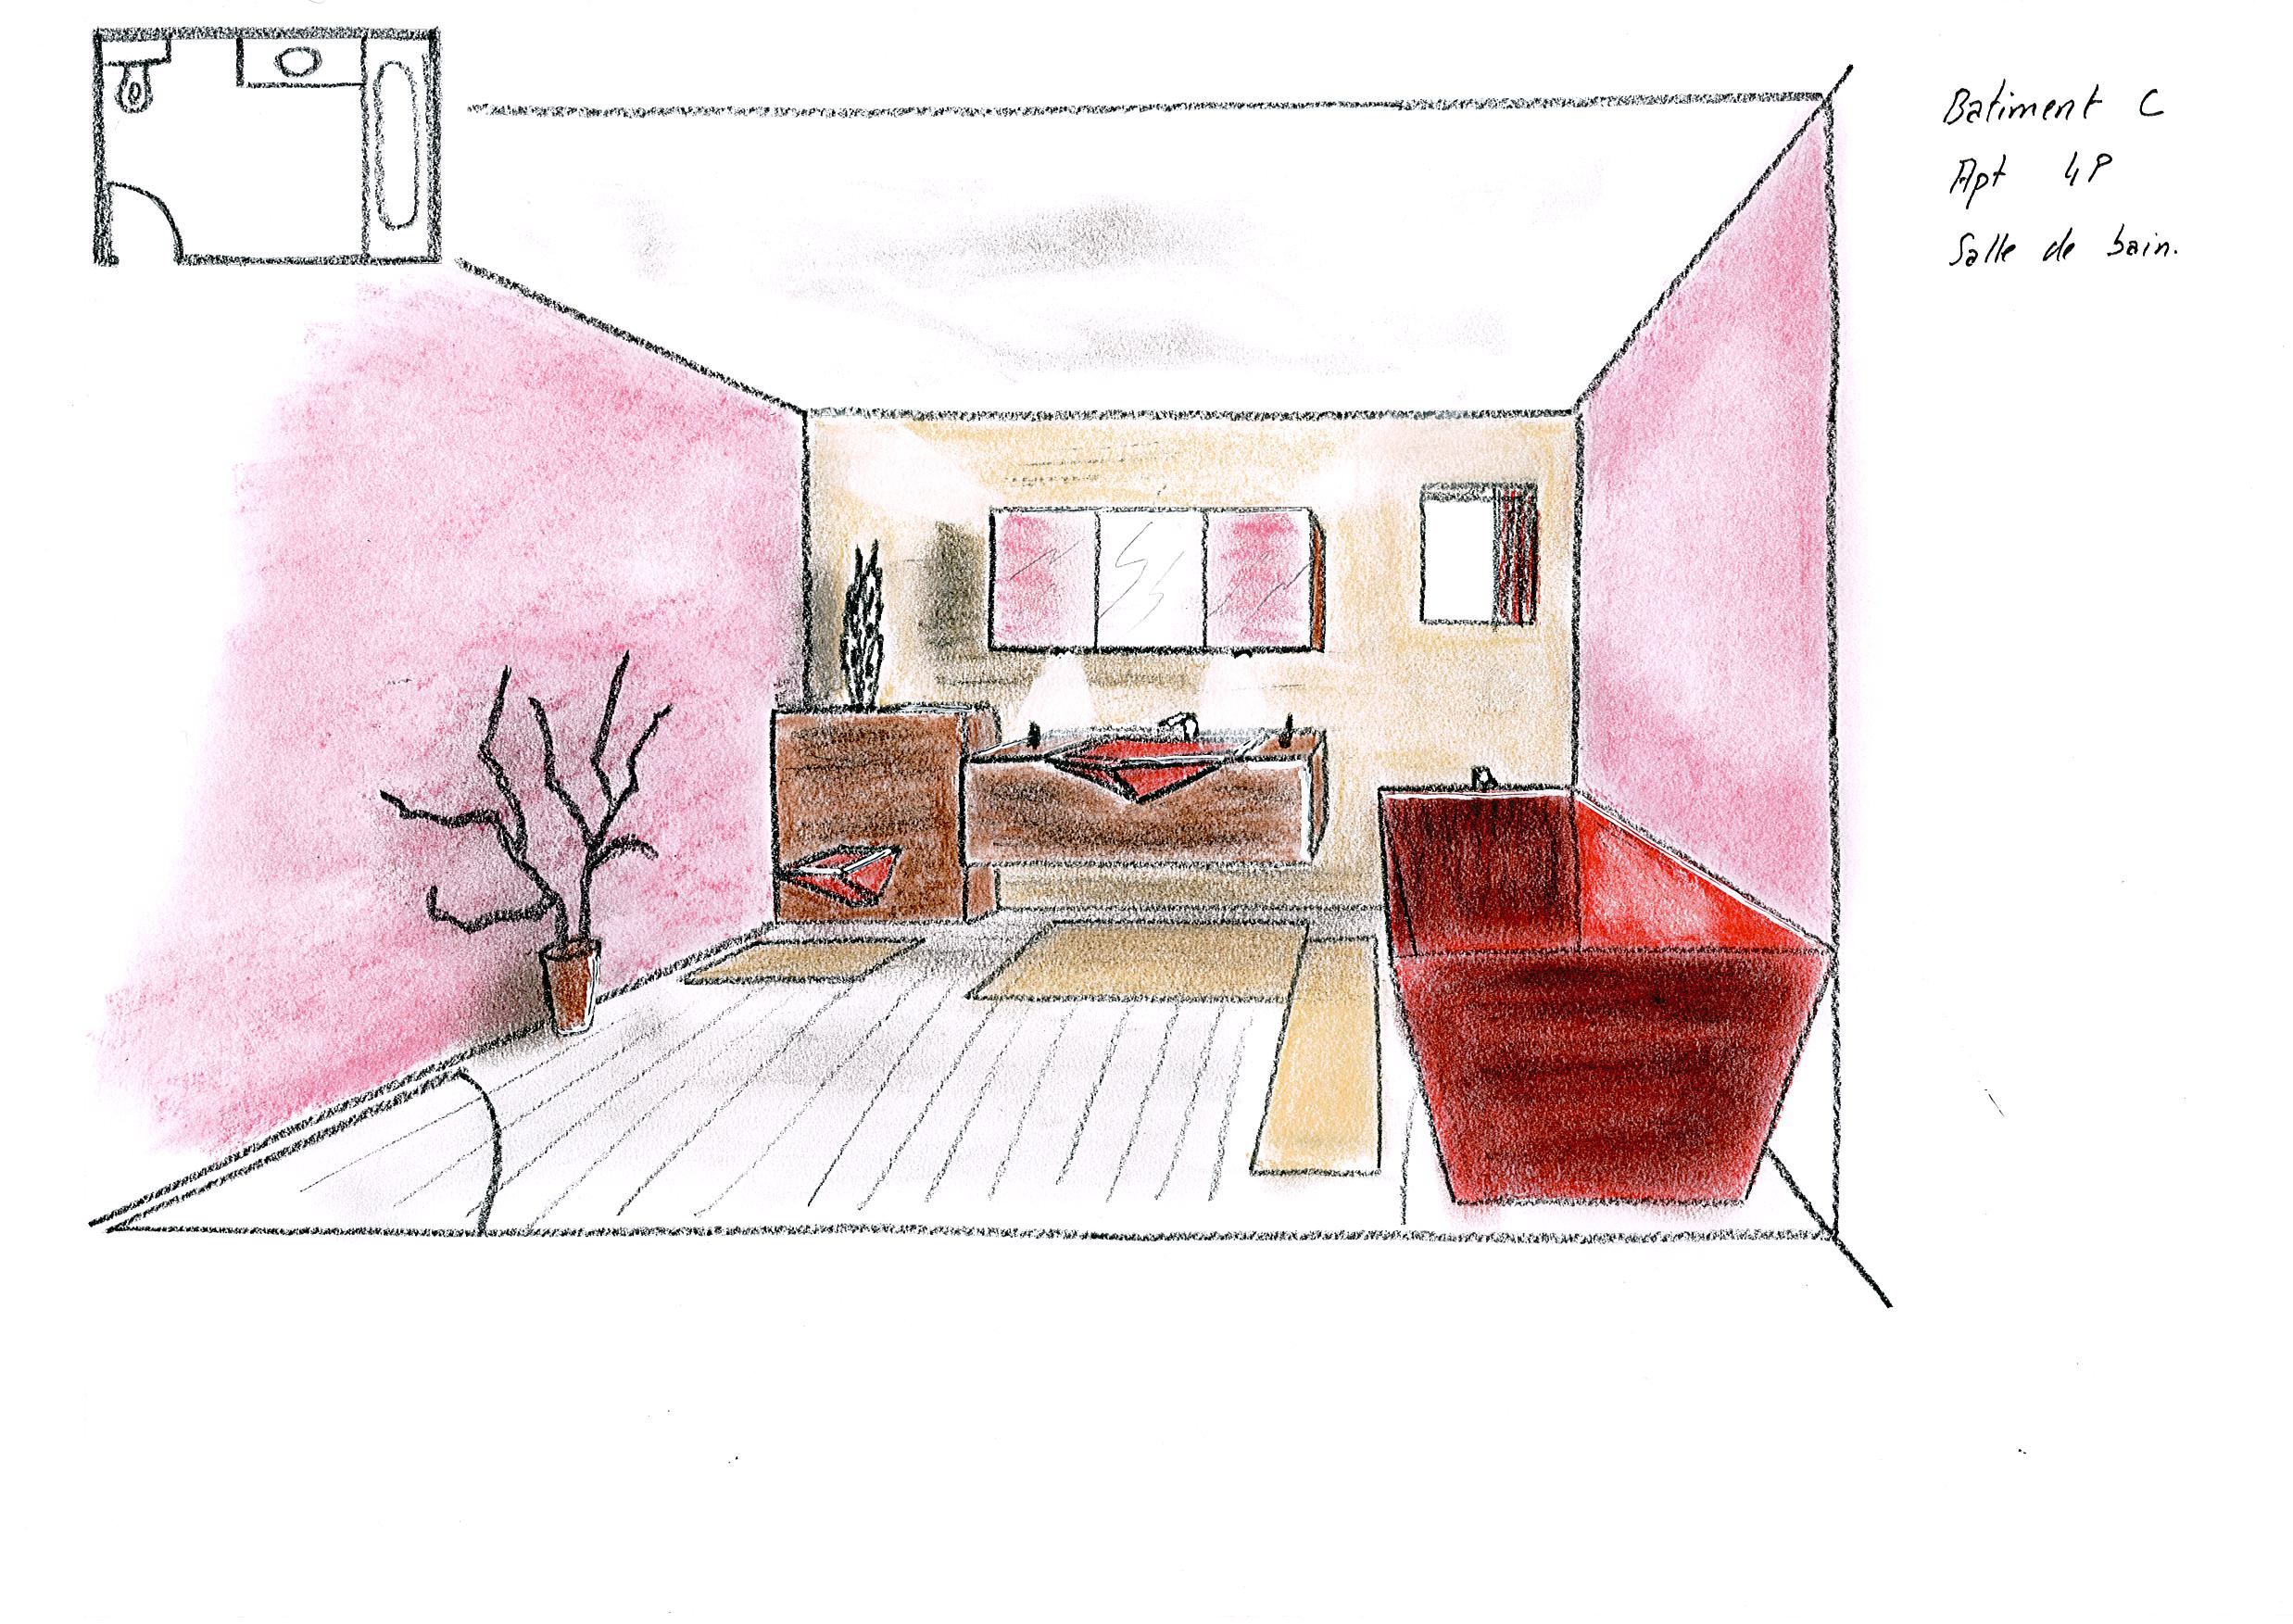 Perspective esquisses en architecture d 39 int rieur for Architecture dessin interieur